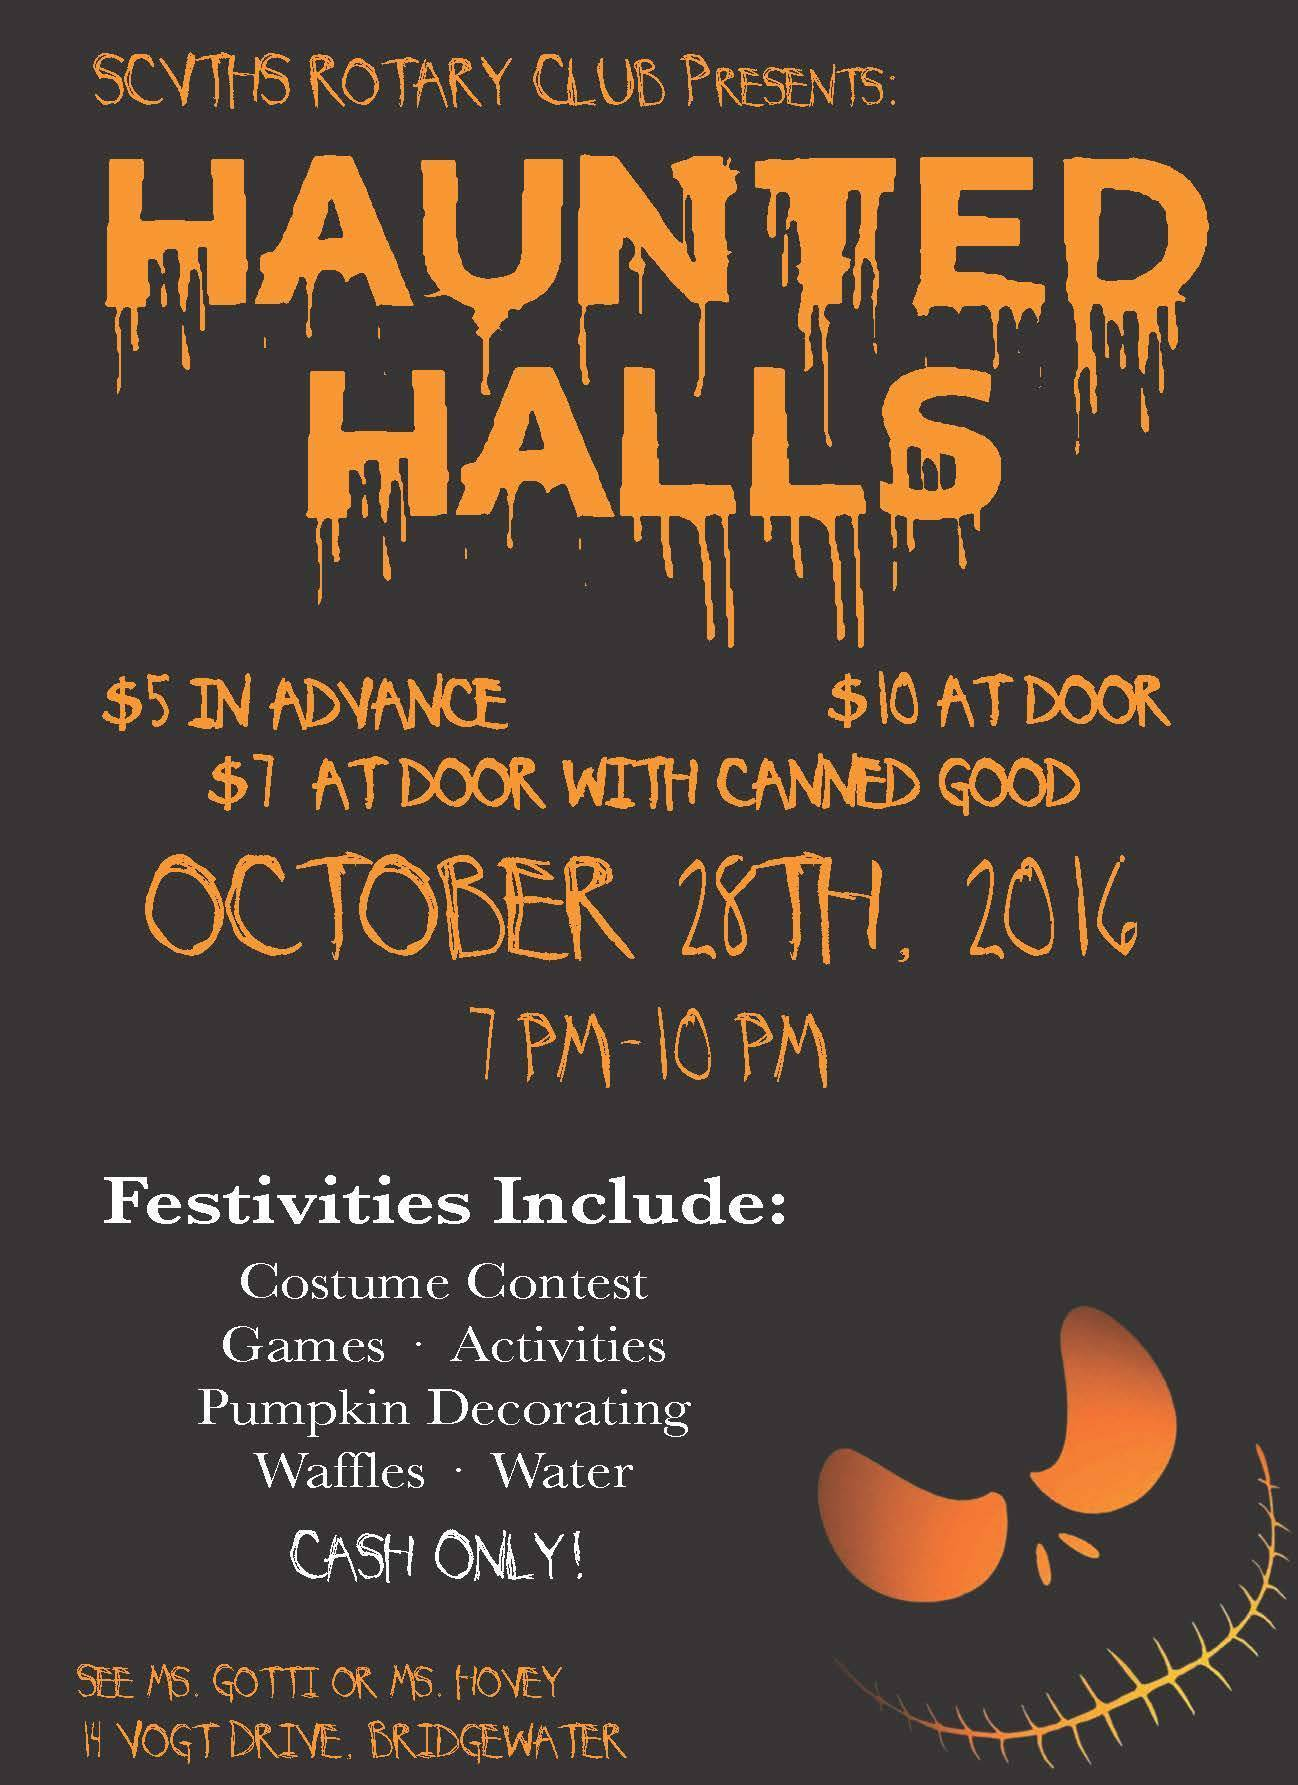 6dac0be5c97081d33d25_Haunted_Halls_Poster.jpg